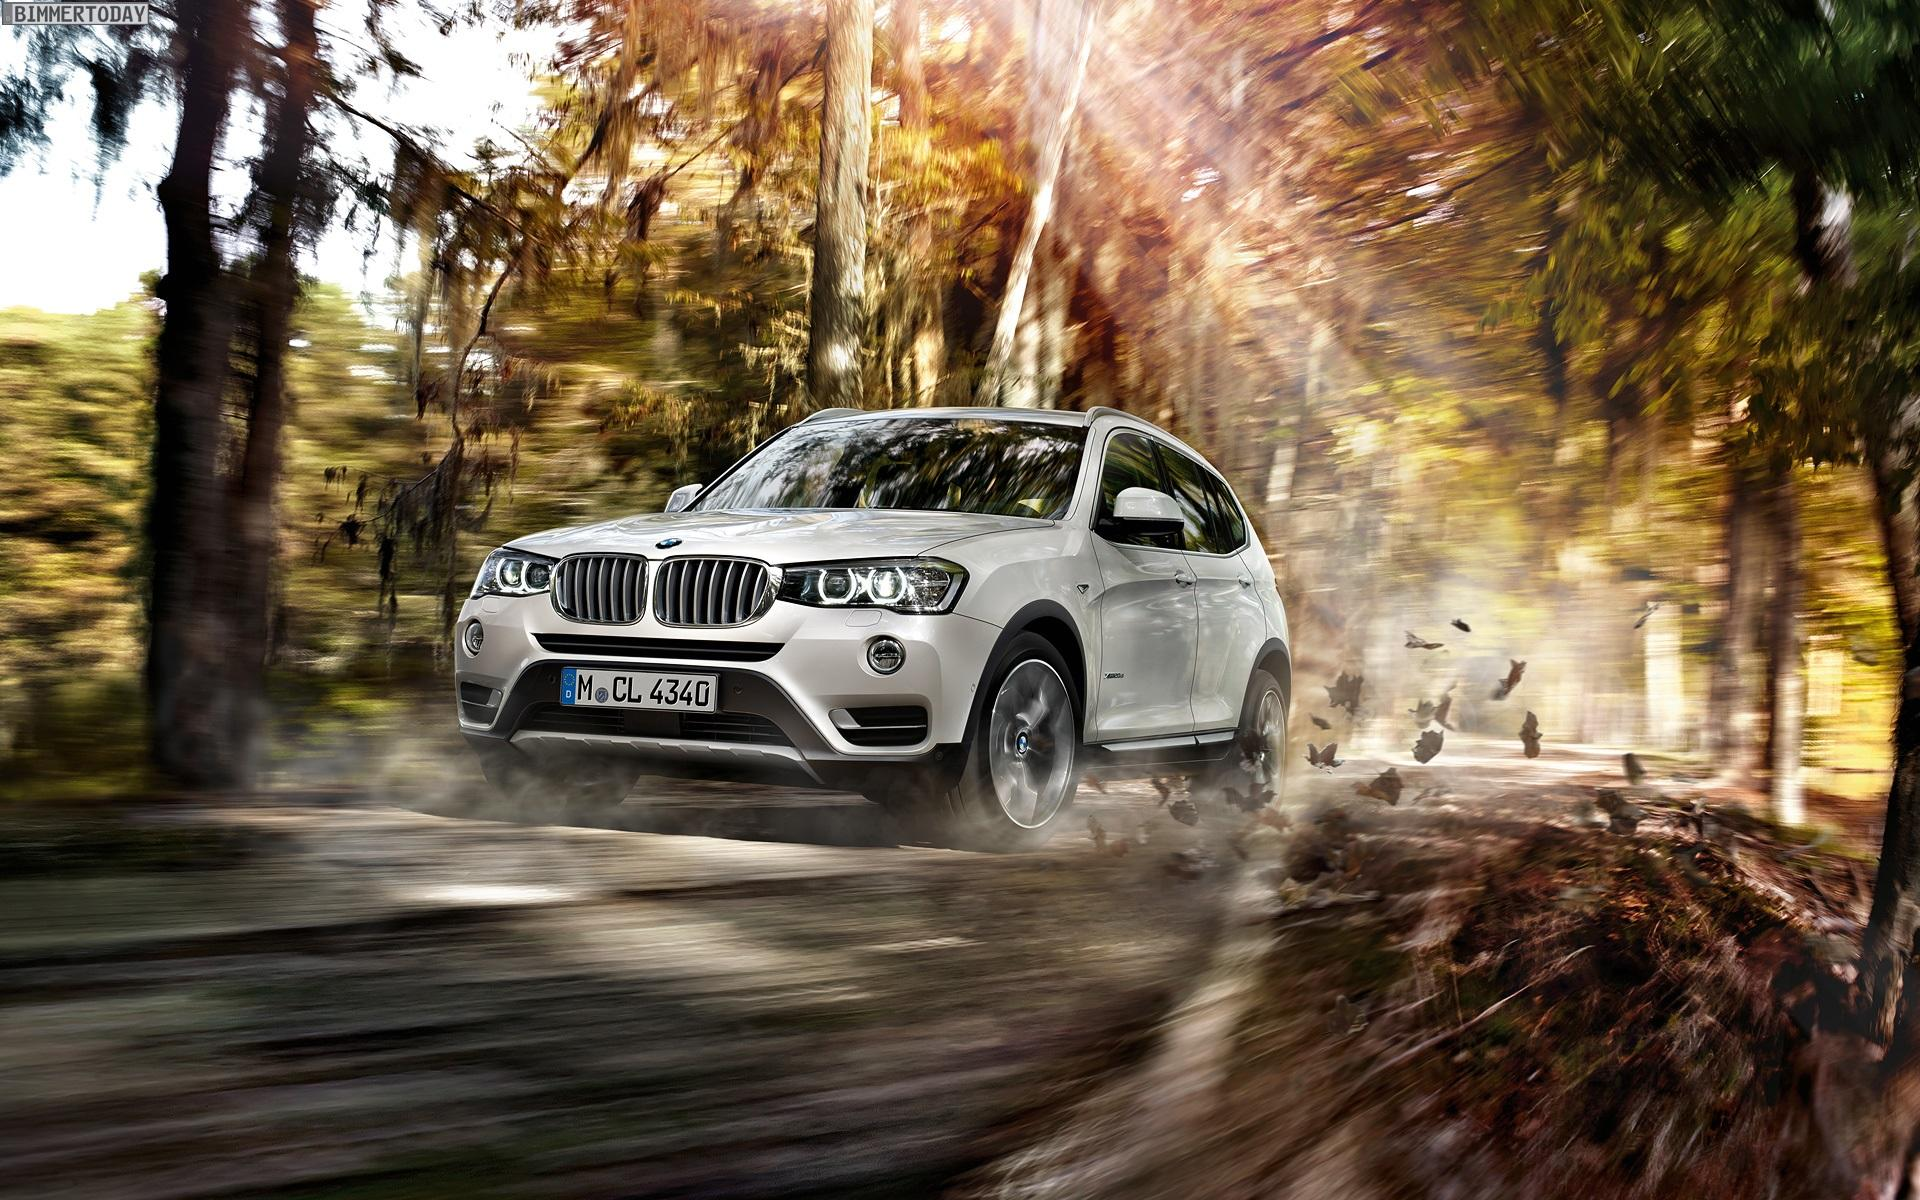 BMW X3 and 5 Series Top Segments in JD Power Dependability Study